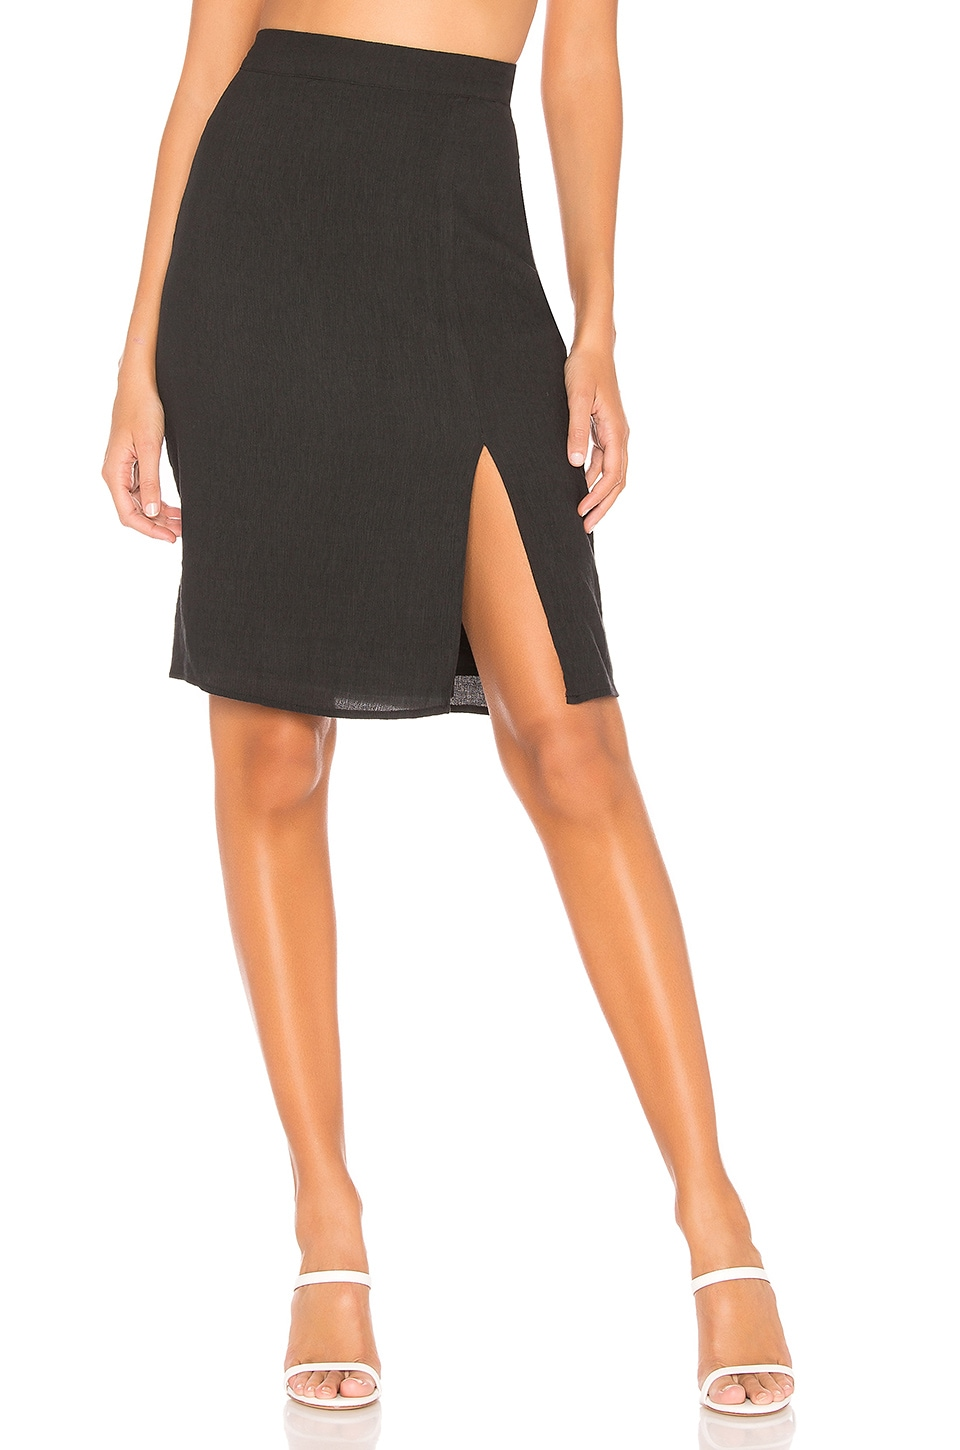 Privacy Please Mallory Skirt in Black